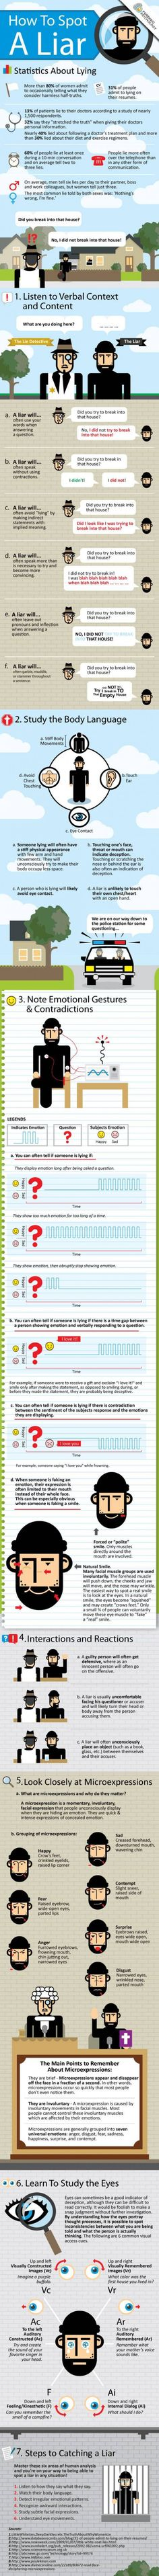 How To Spot A Liar [Infographic]